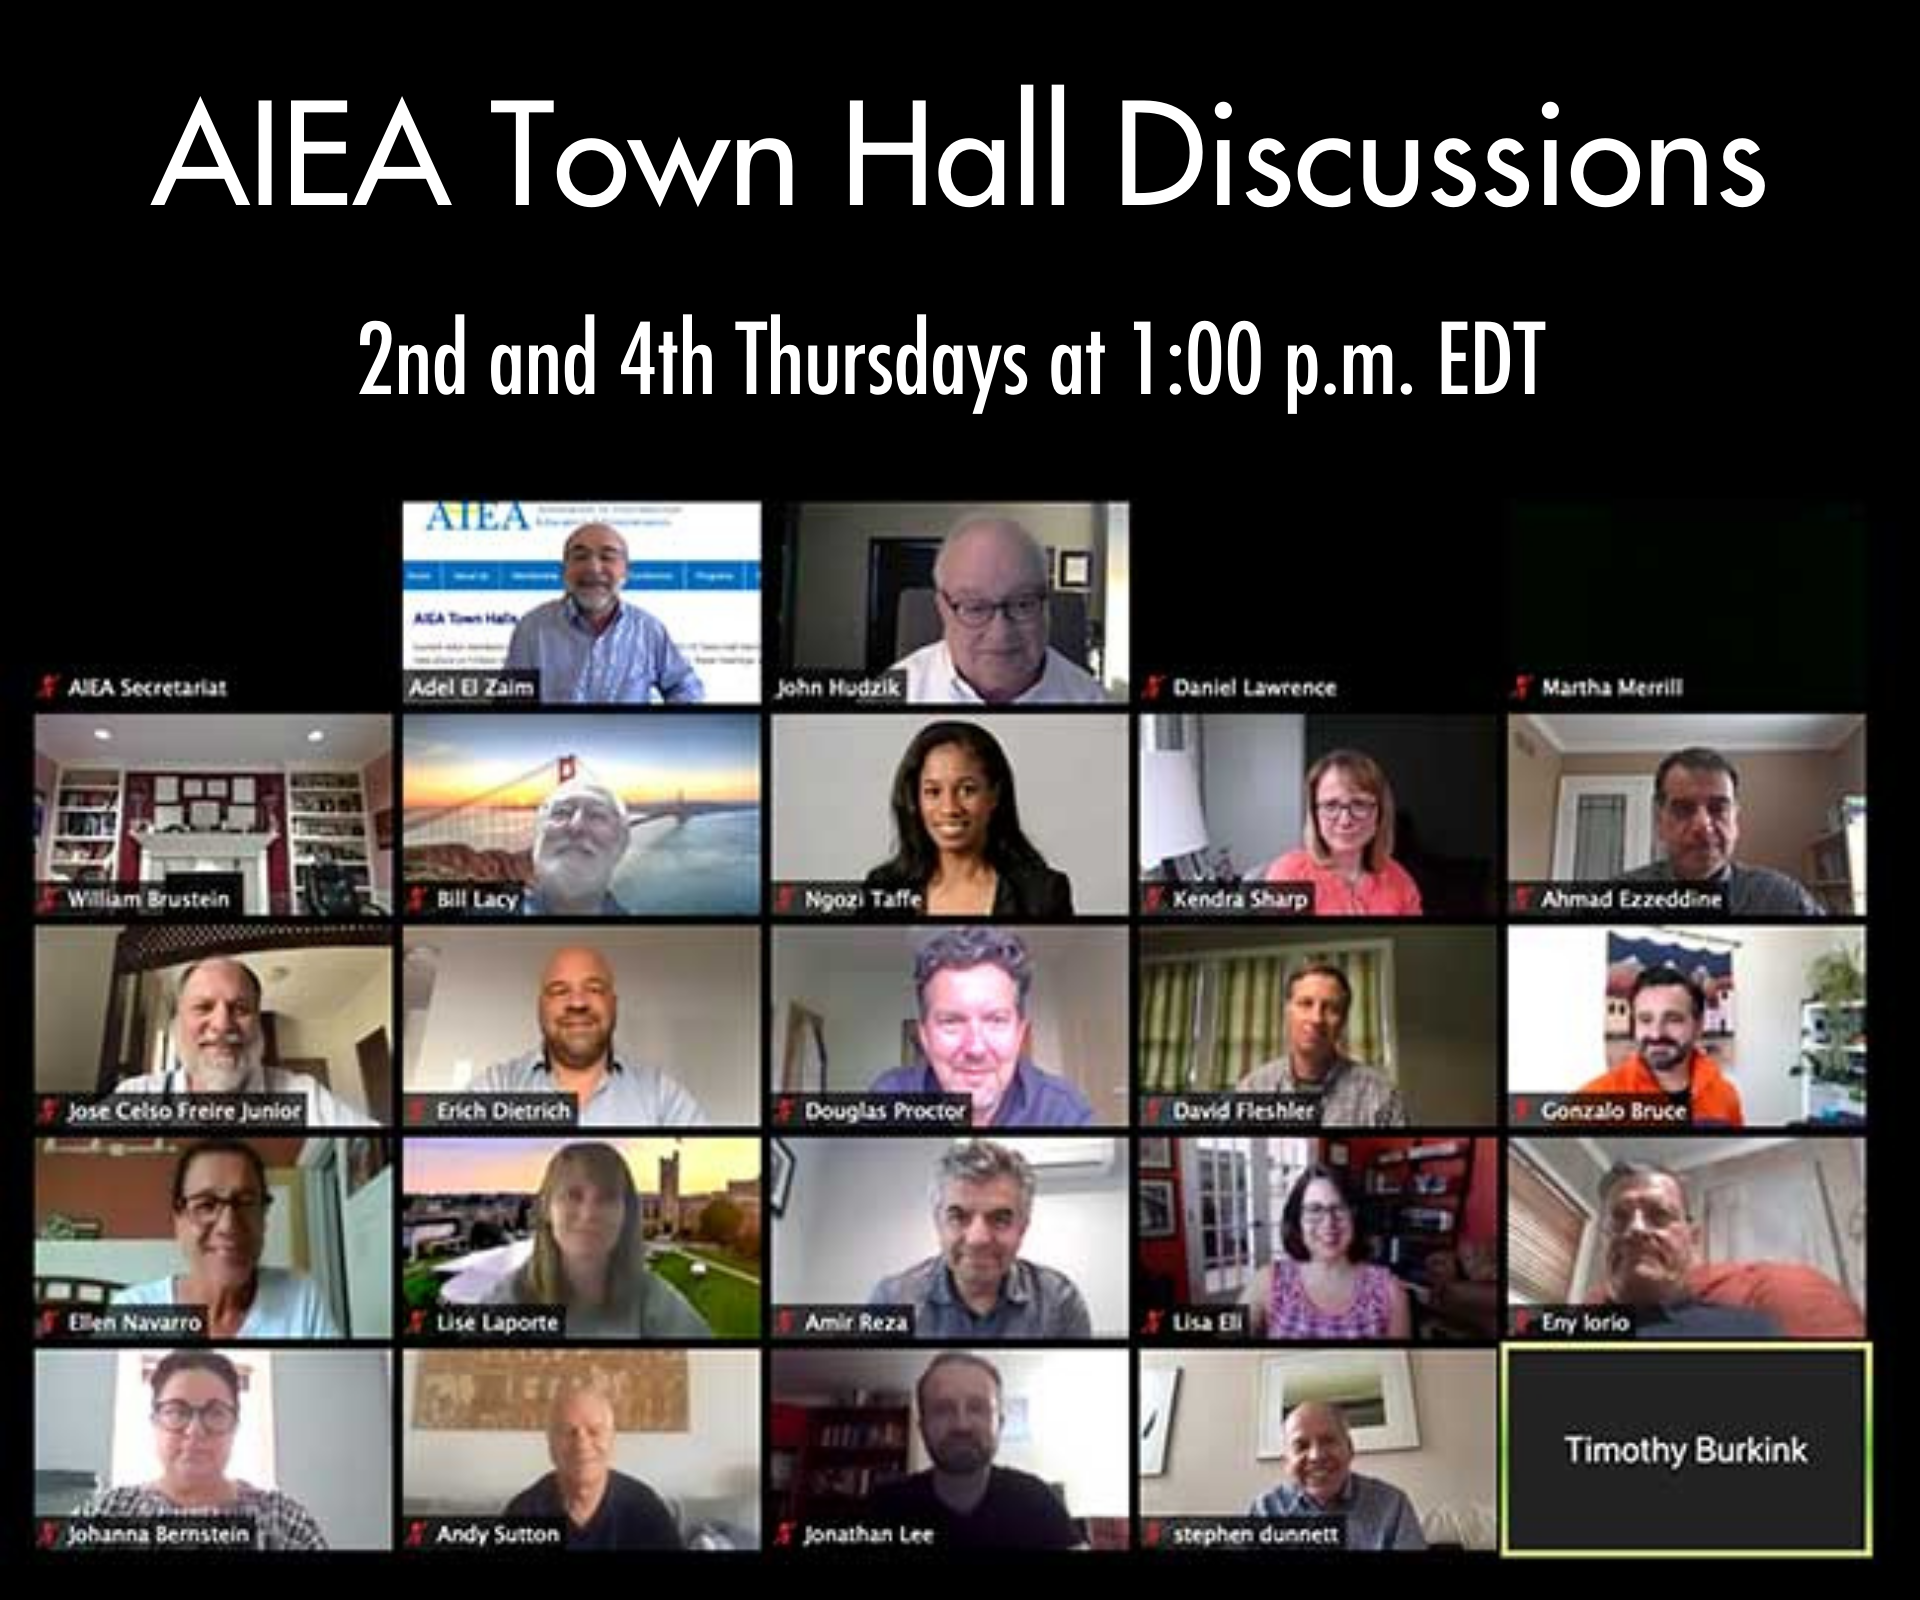 AIEA Town Hall Discussions: 2nd and 4th Fridays, 1:00 PM Eastern